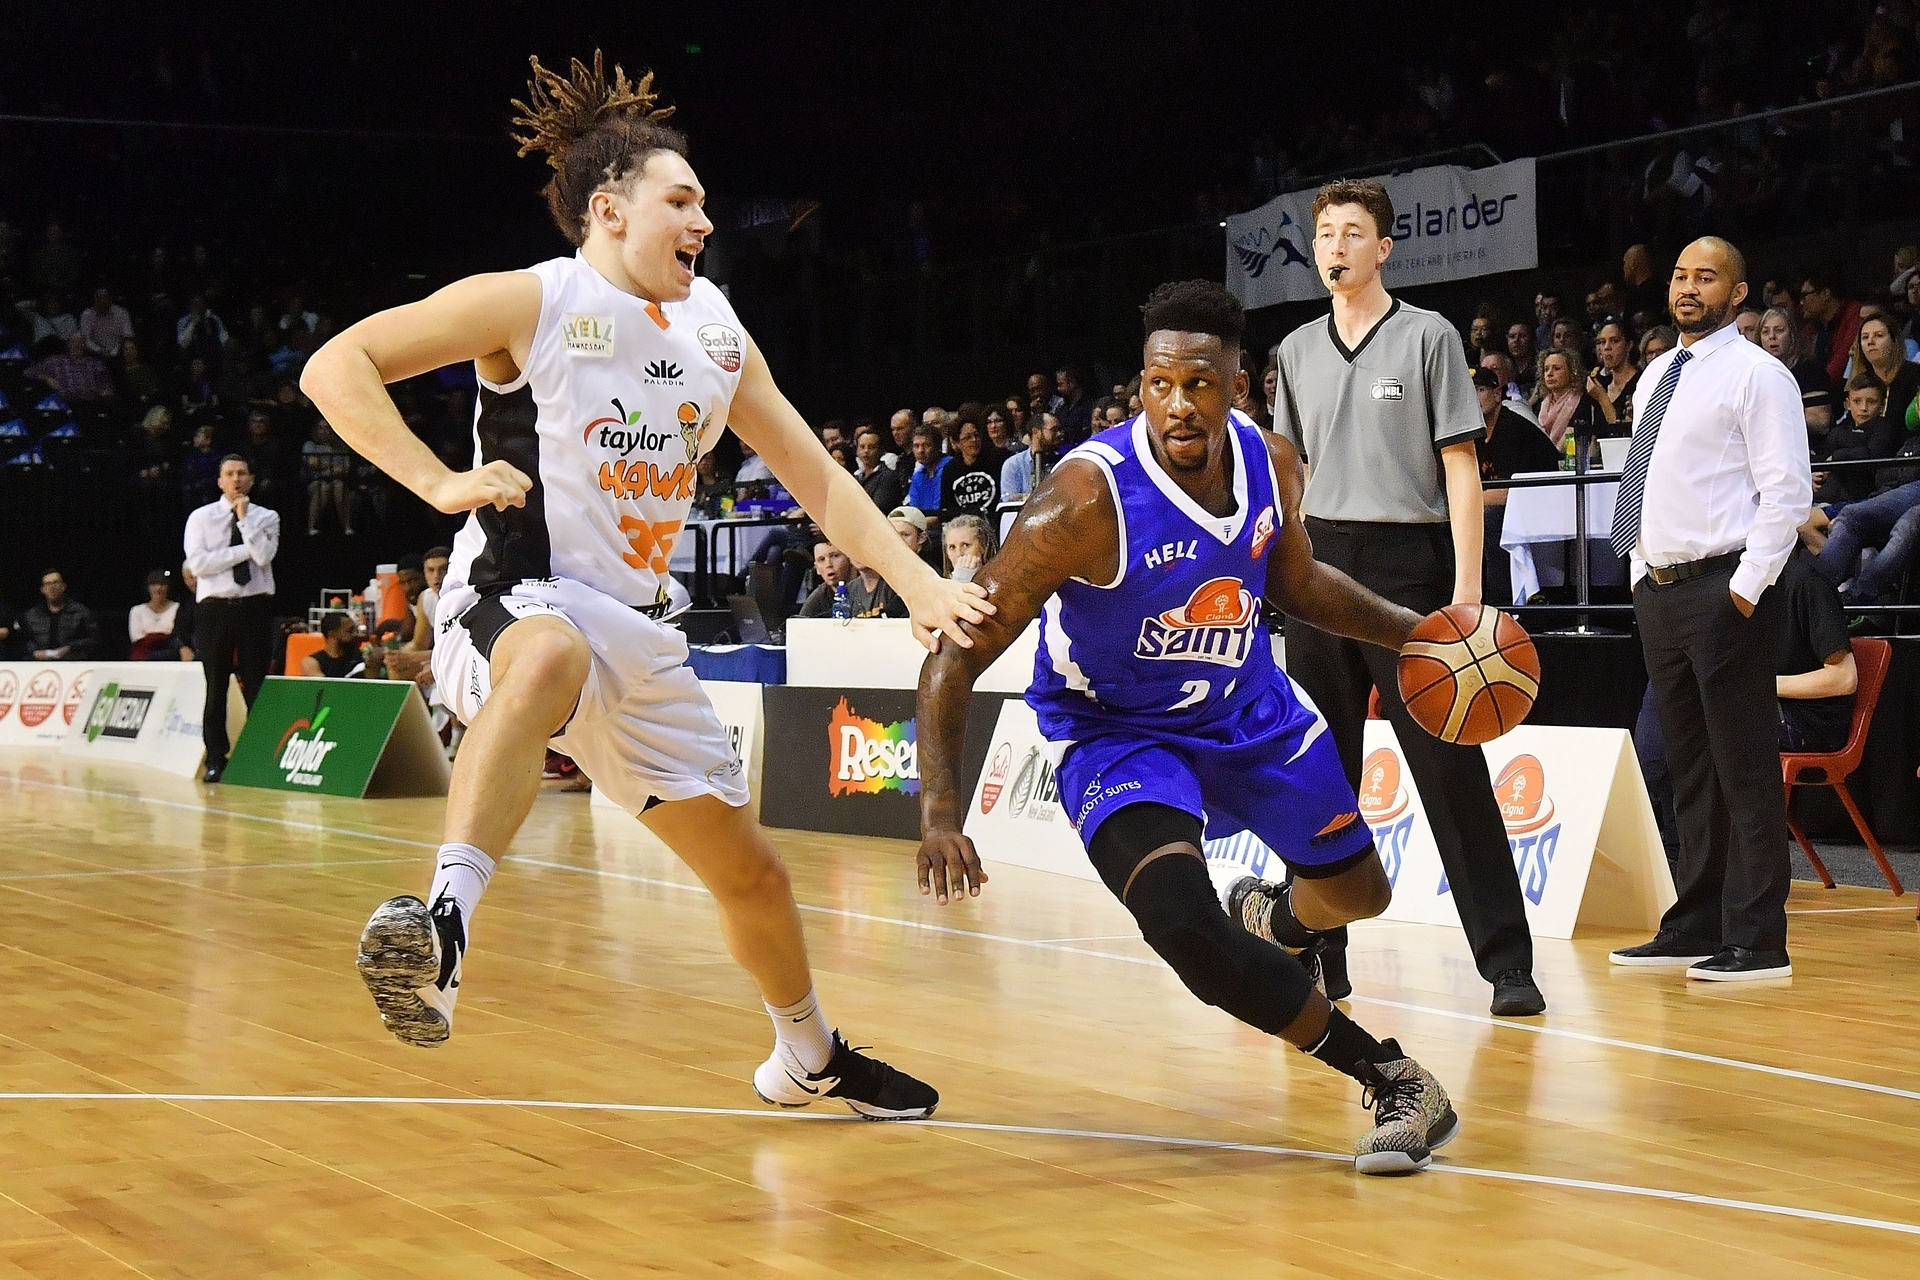 Basketball: Mitch Newton making most of court time in debut